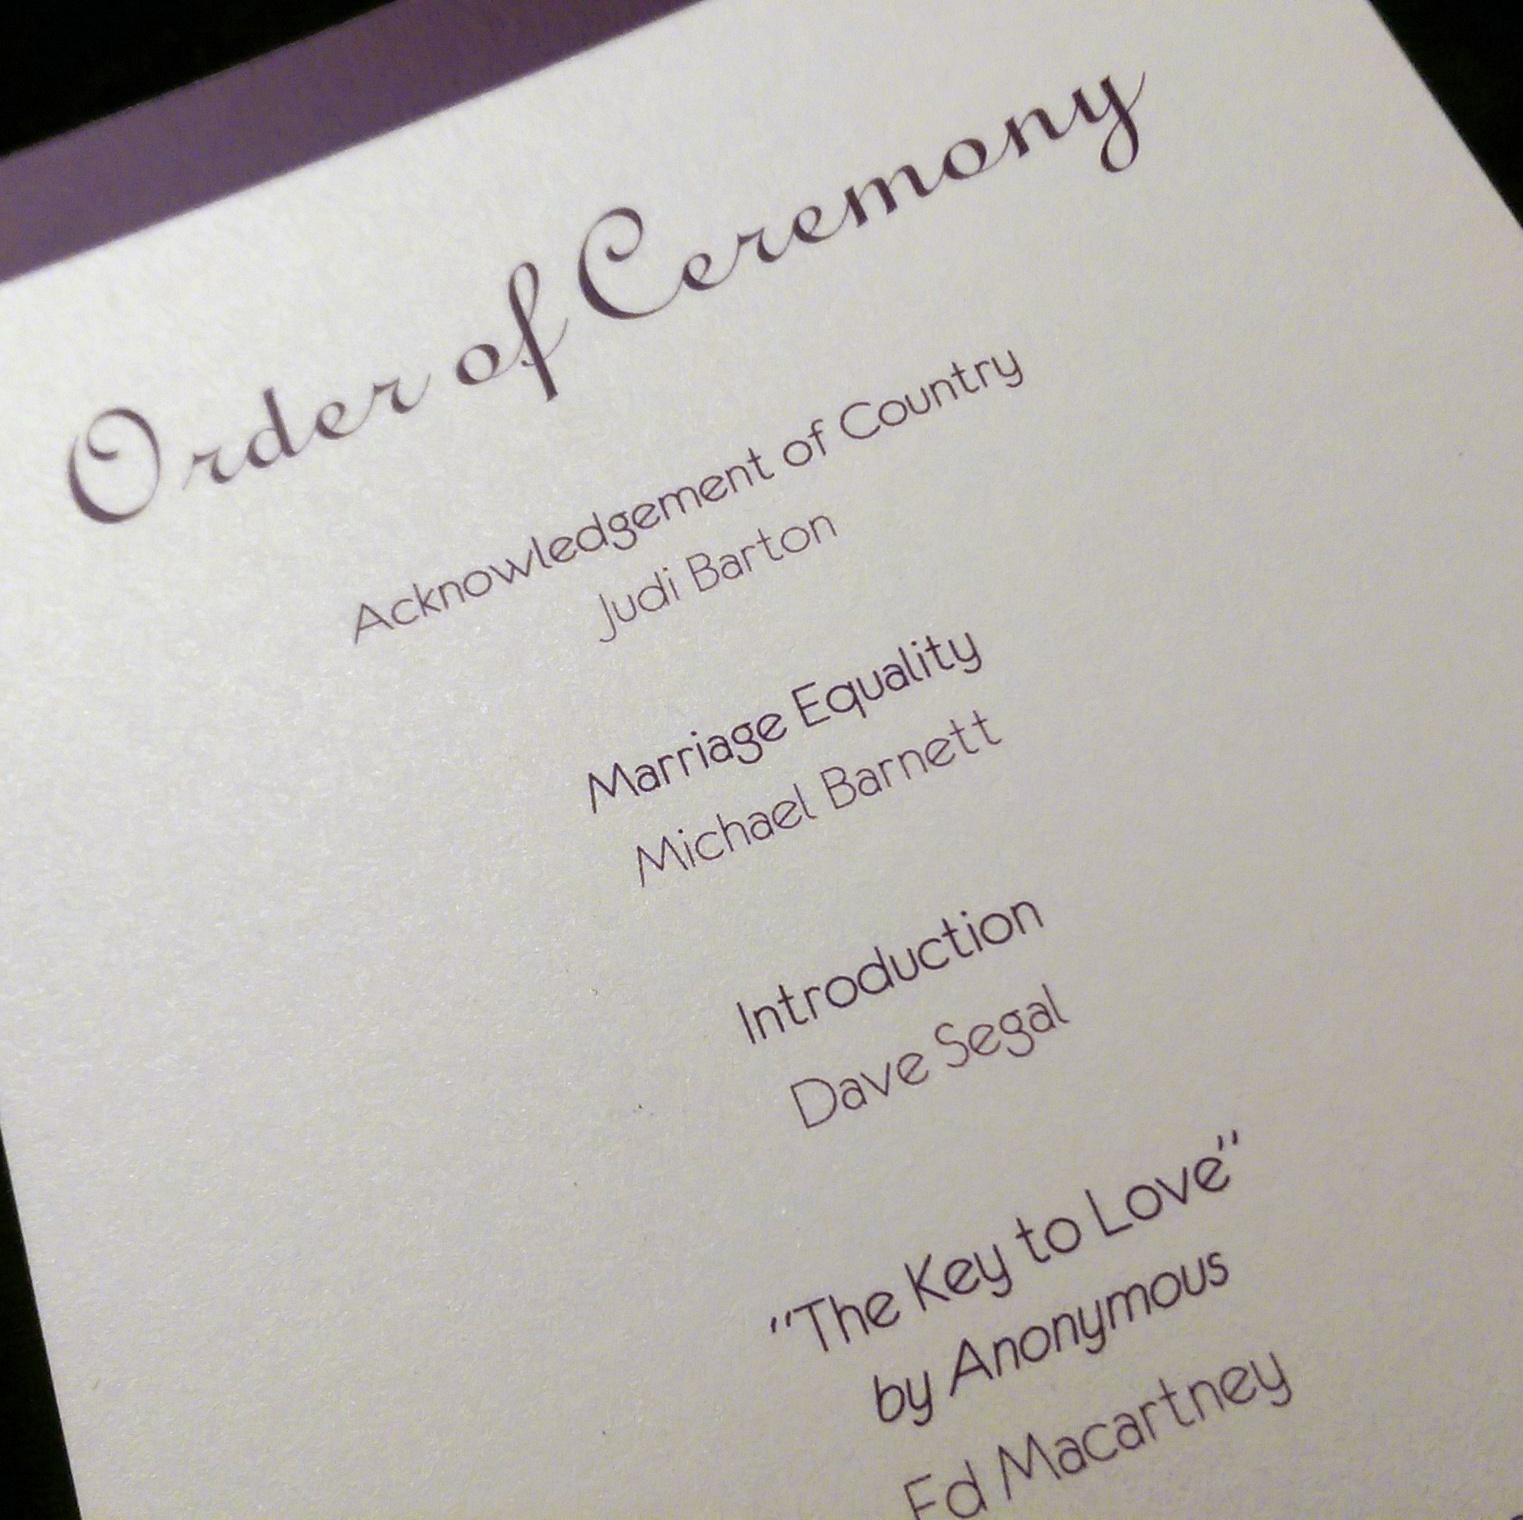 Order Of Speeches At A Wedding: Put A Marriage Equality Statement In Your Wedding Ceremony